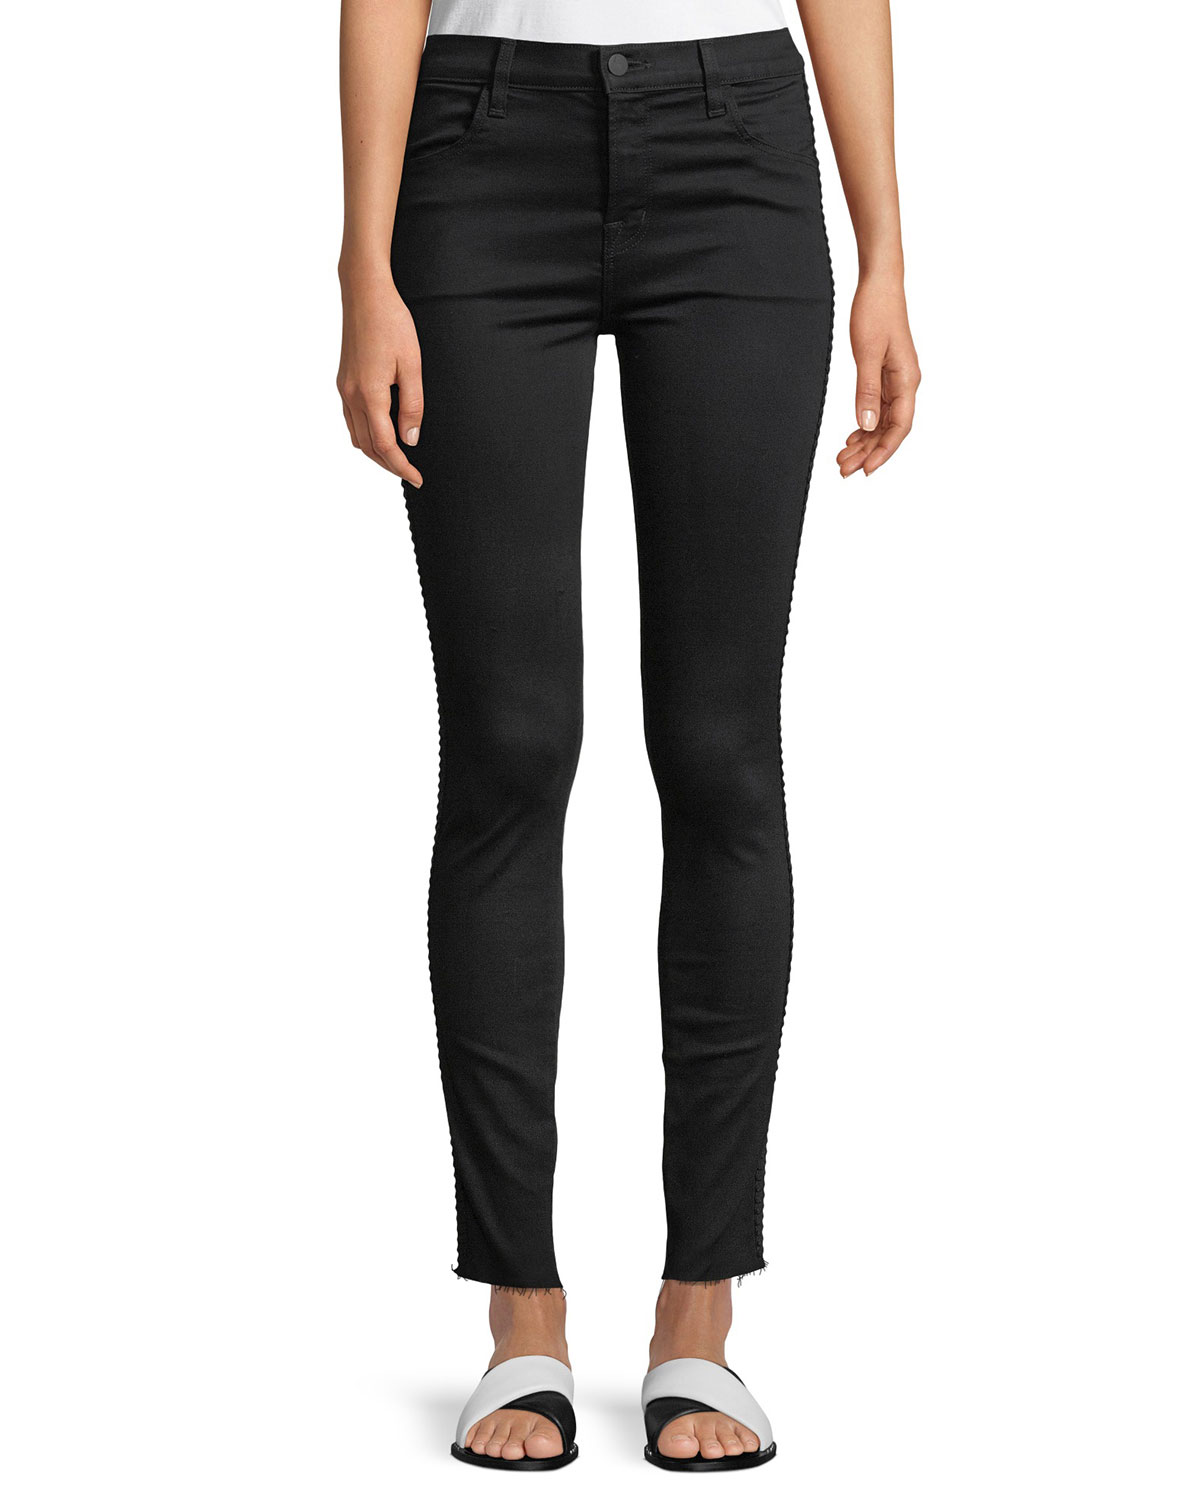 Maria High-Rise Super Skinny Jeans with Braid Side